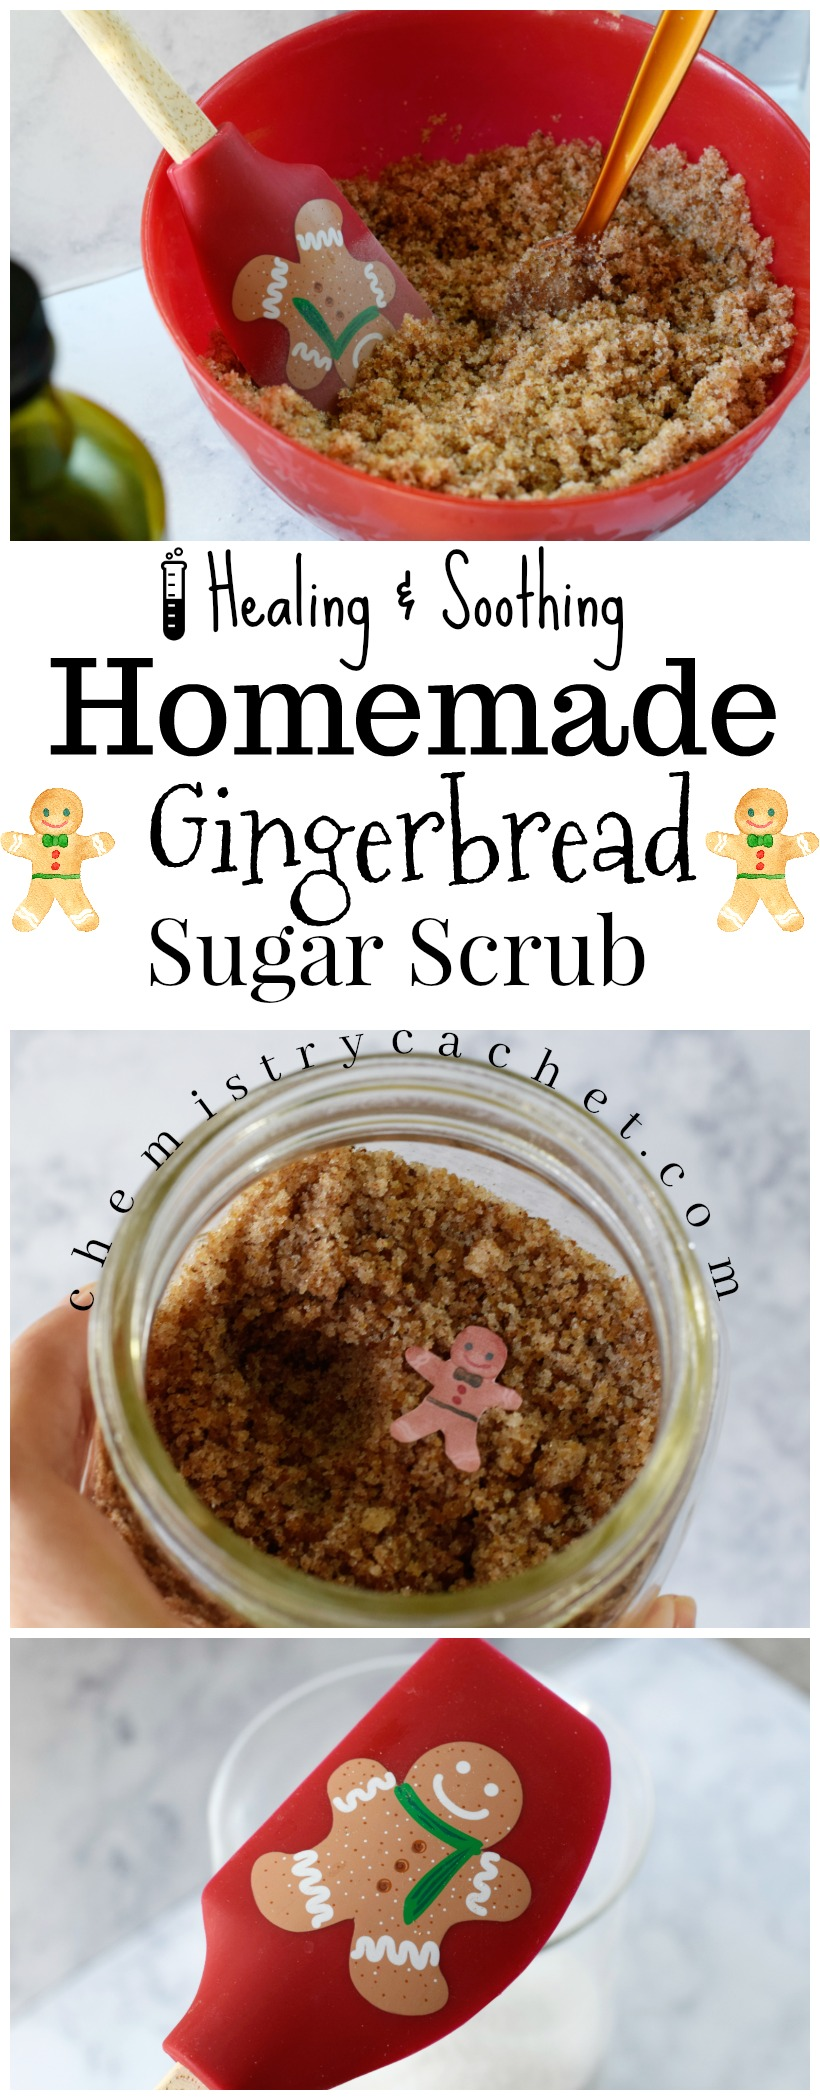 Healing, Soothing Homemade Gingerbread Sugar Scrub perfect for gifts! Not your typical sugar scrub either! on chemistrycachet.com #gingerbreadscrub #homemadesugarscrub